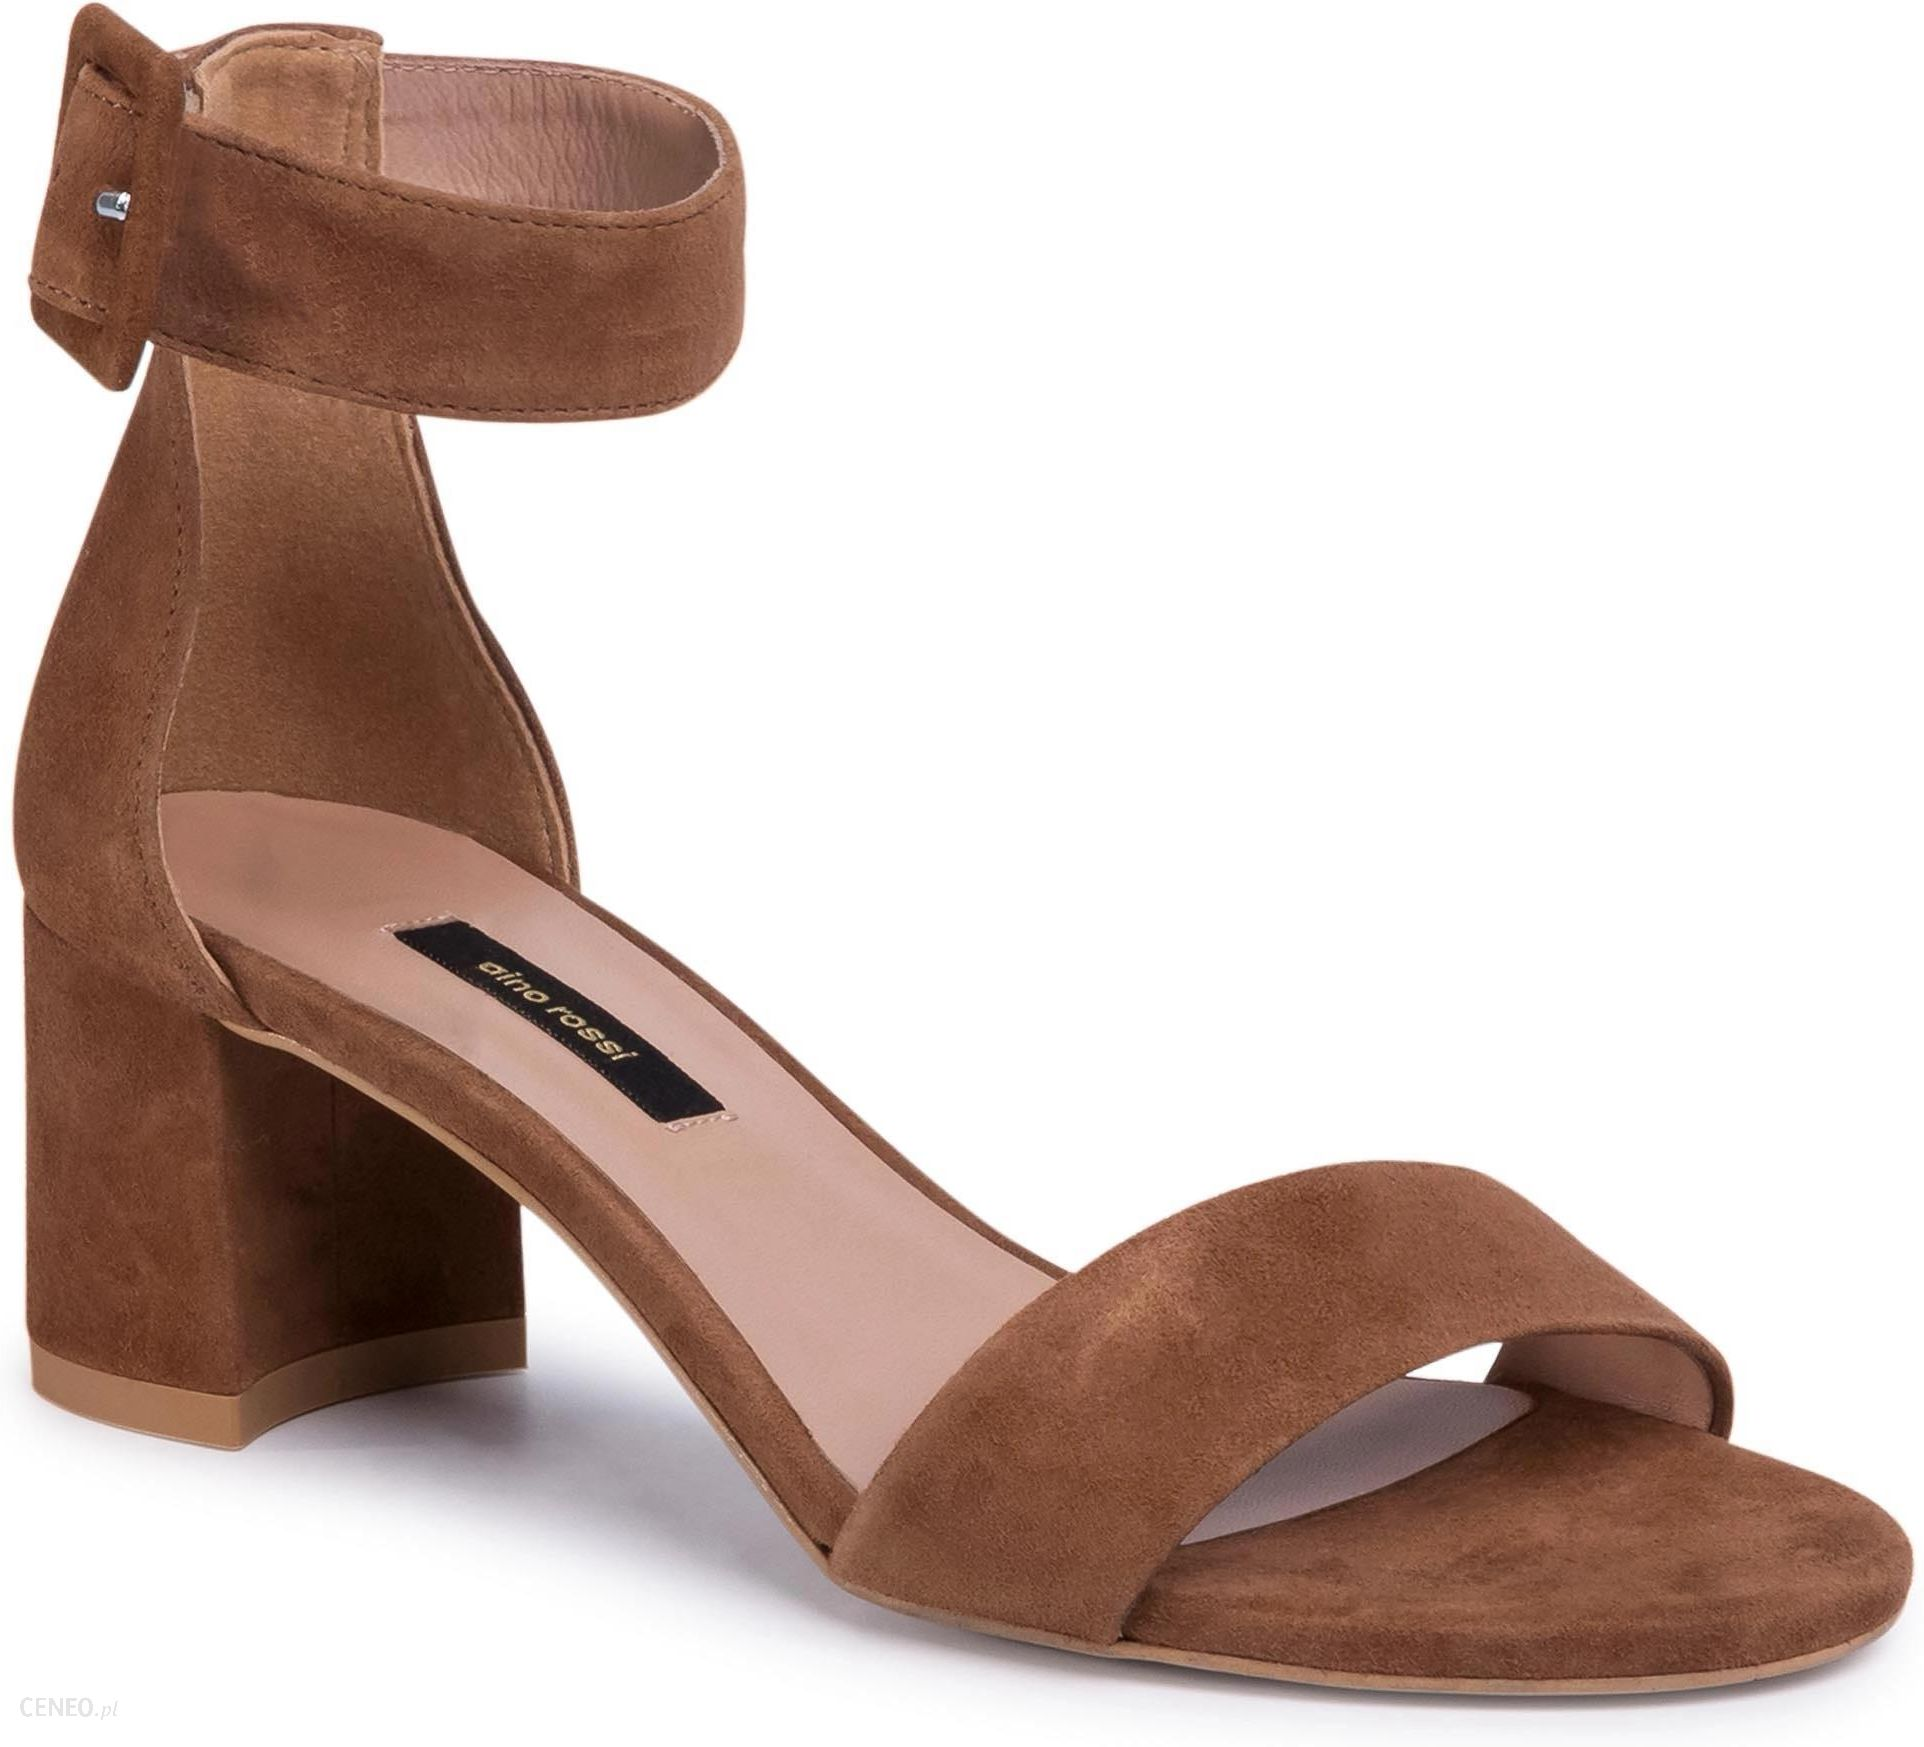 Sandaly Gino Rossi Dnk207 Brown Ceny I Opinie Ceneo Pl